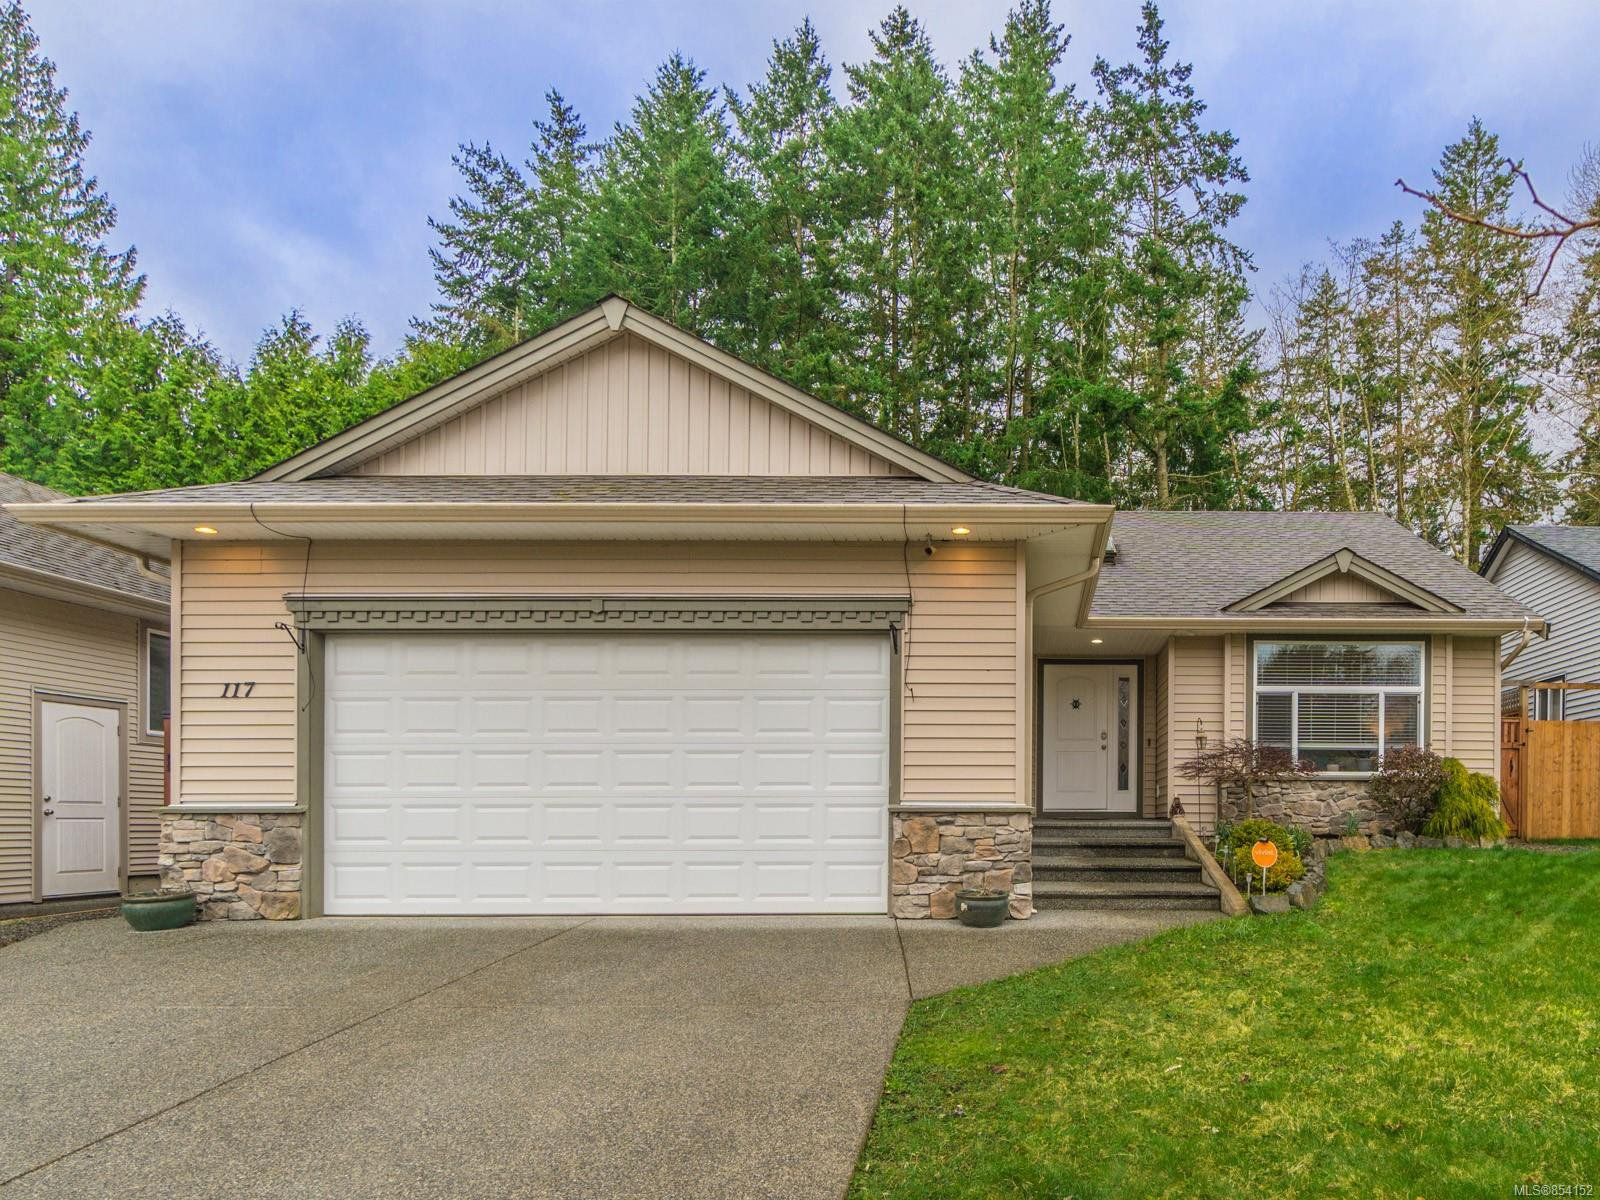 Main Photo: 117 Cowling Pl in : Na Chase River House for sale (Nanaimo)  : MLS®# 854152